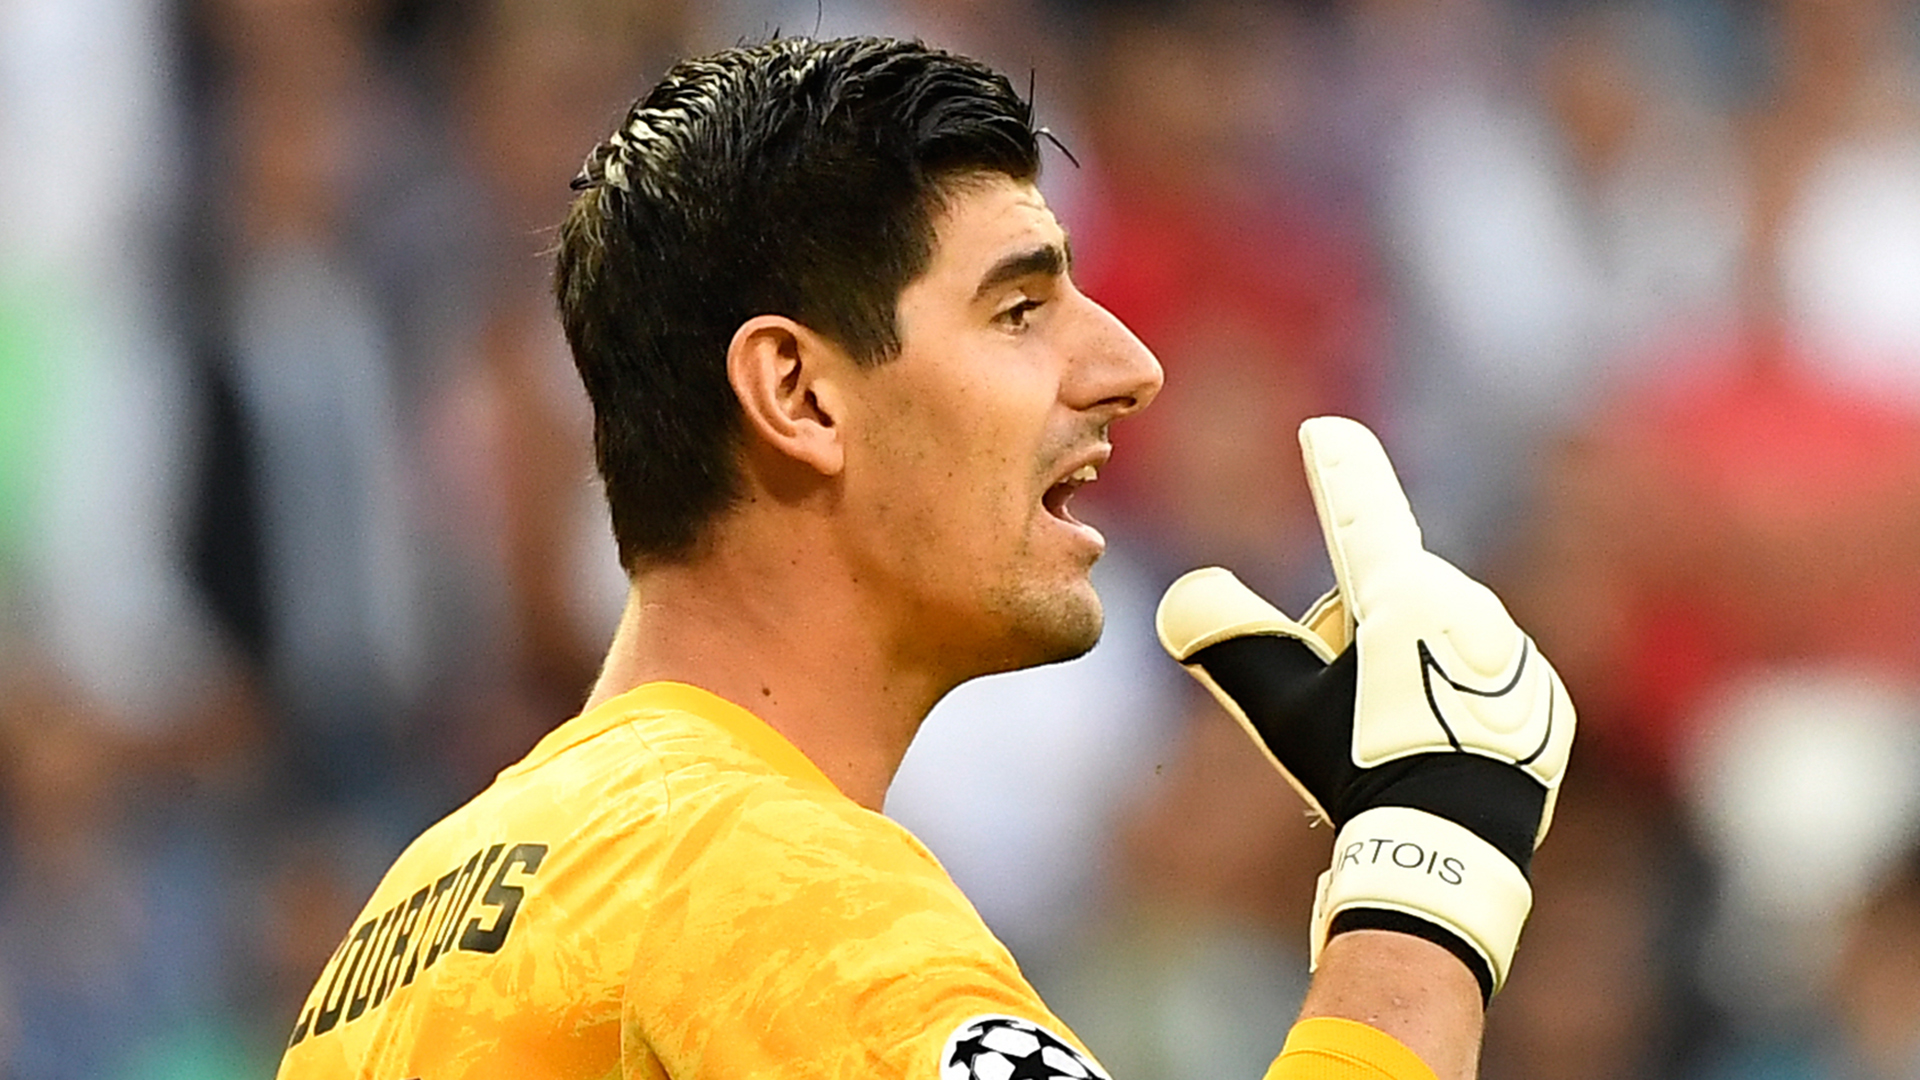 'I didn't see anything!' - Courtois defends VAR intervention